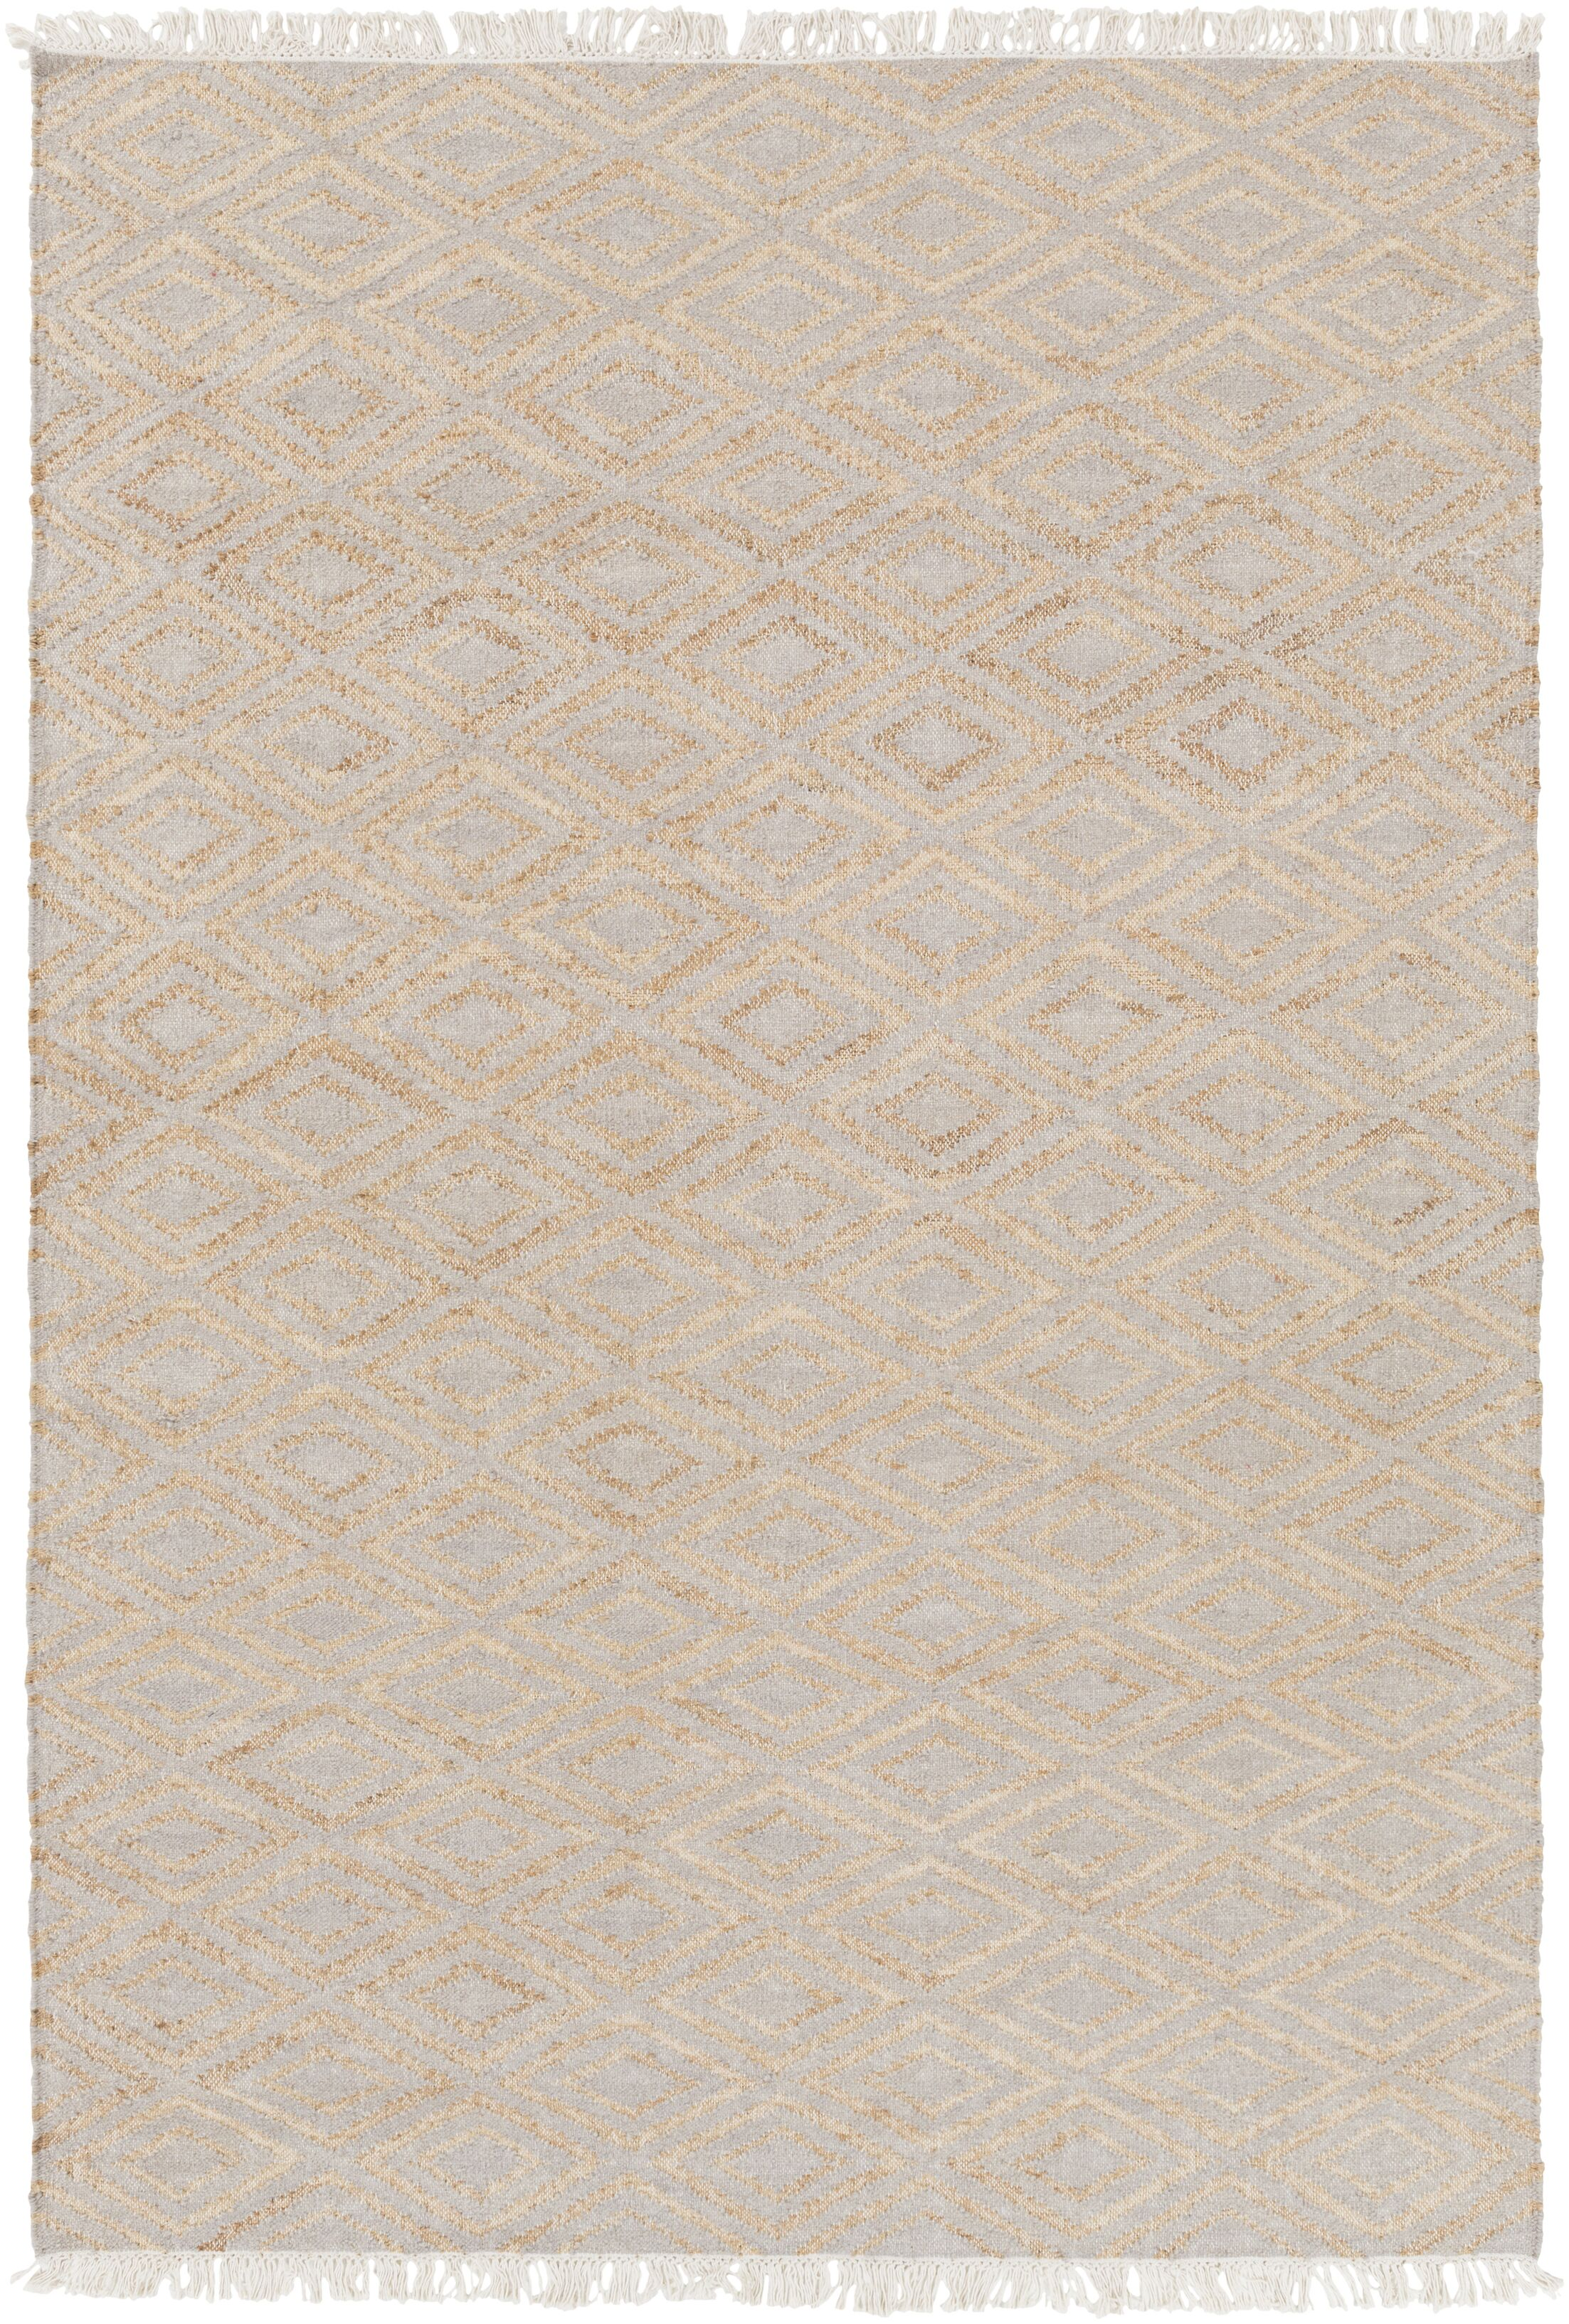 Pascal Hand-Woven Beige Area Rug Rug Size: Rectangle 4' x 6'